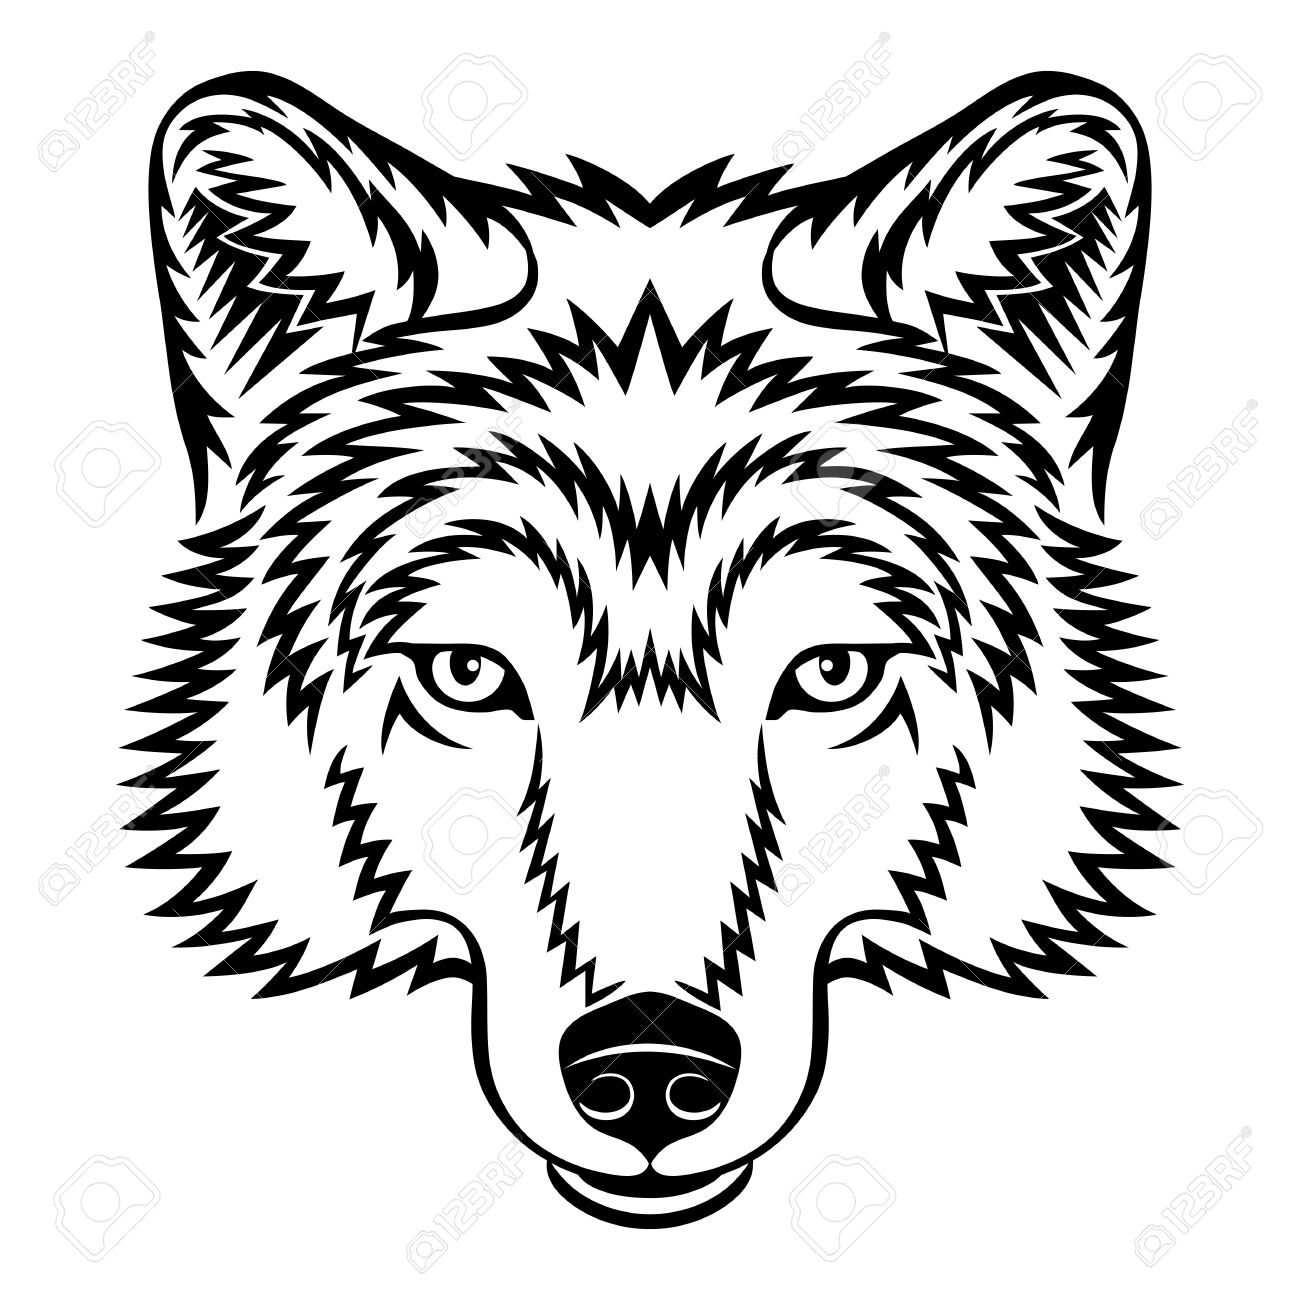 1300x1300 Intricate Clipart Wolf My Little Pony Pictures Grey Royalty Free